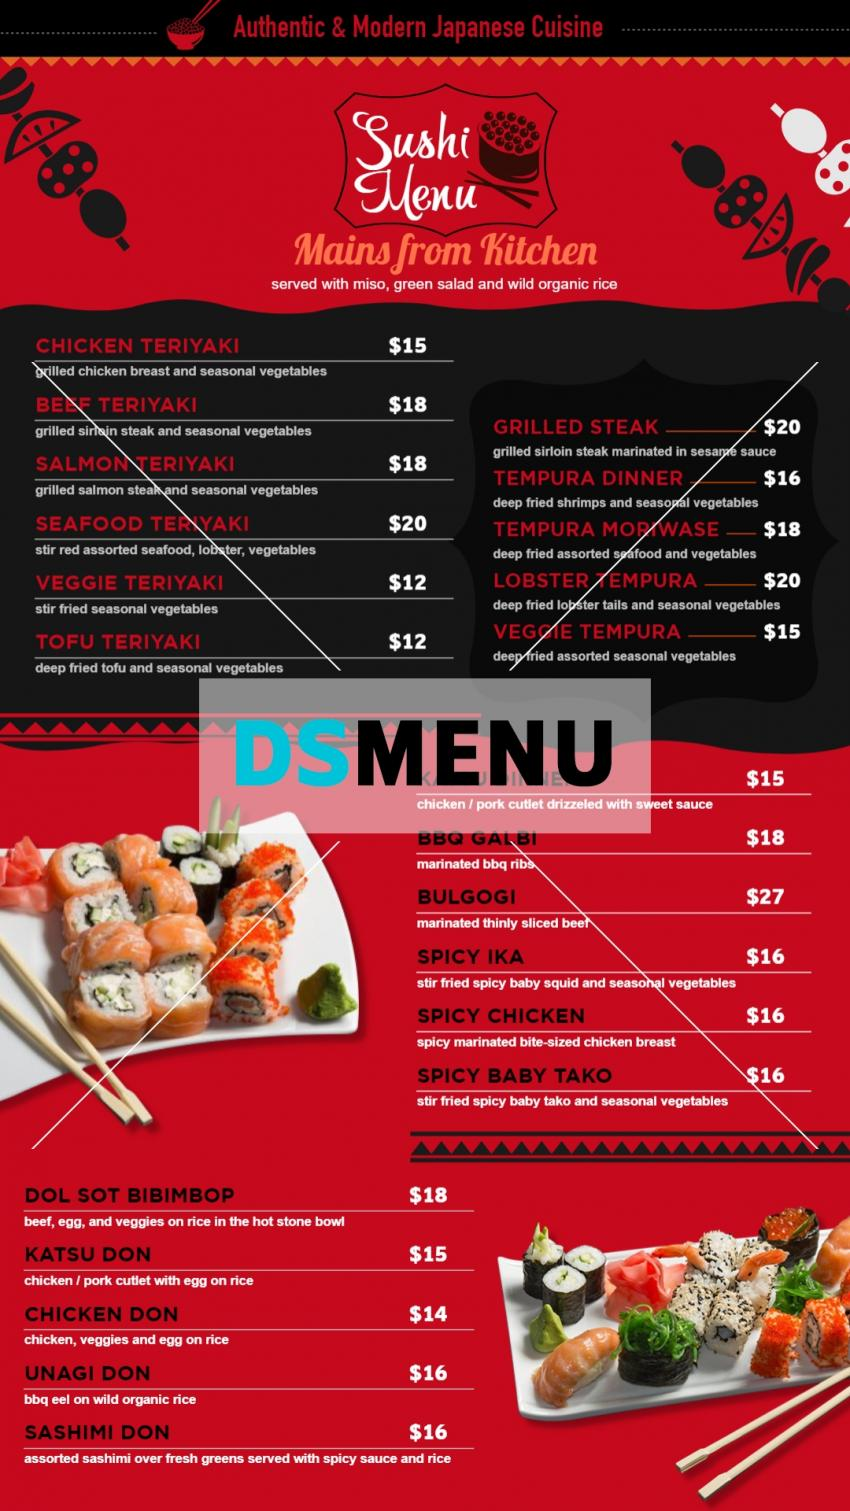 Vertical Japanese sushi menuboad for digital signage for restaurants